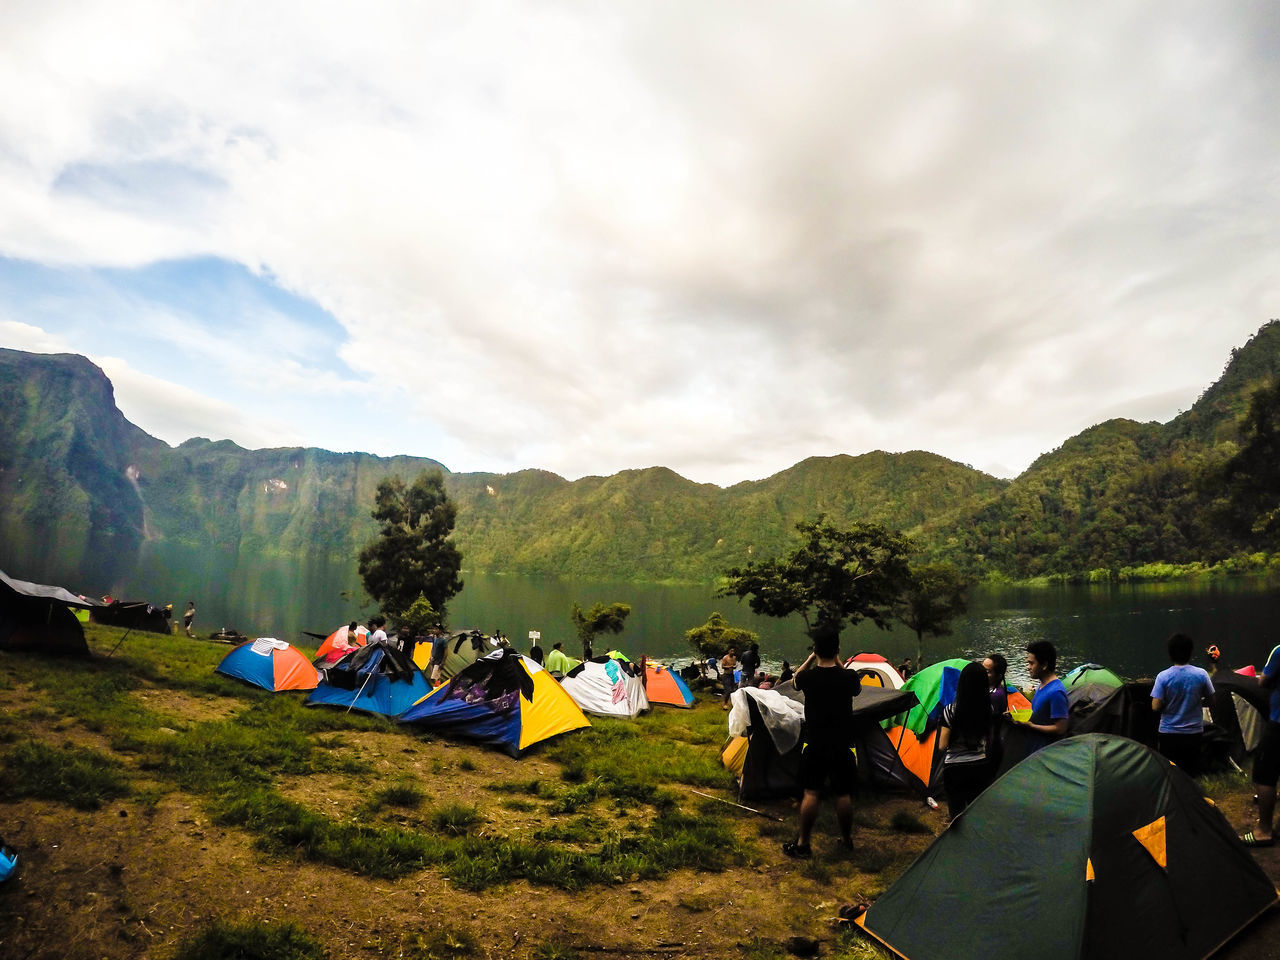 Woke up to this beautiful scene. <3 Beauty In Nature Camping Cloud - Sky Day Grass Green Color Lake View Landscape Mirror Lake Mountain Nature Outdoors People Relaxation Scenics Sky Summer Togetherness Travel Destinations Tree Trekking